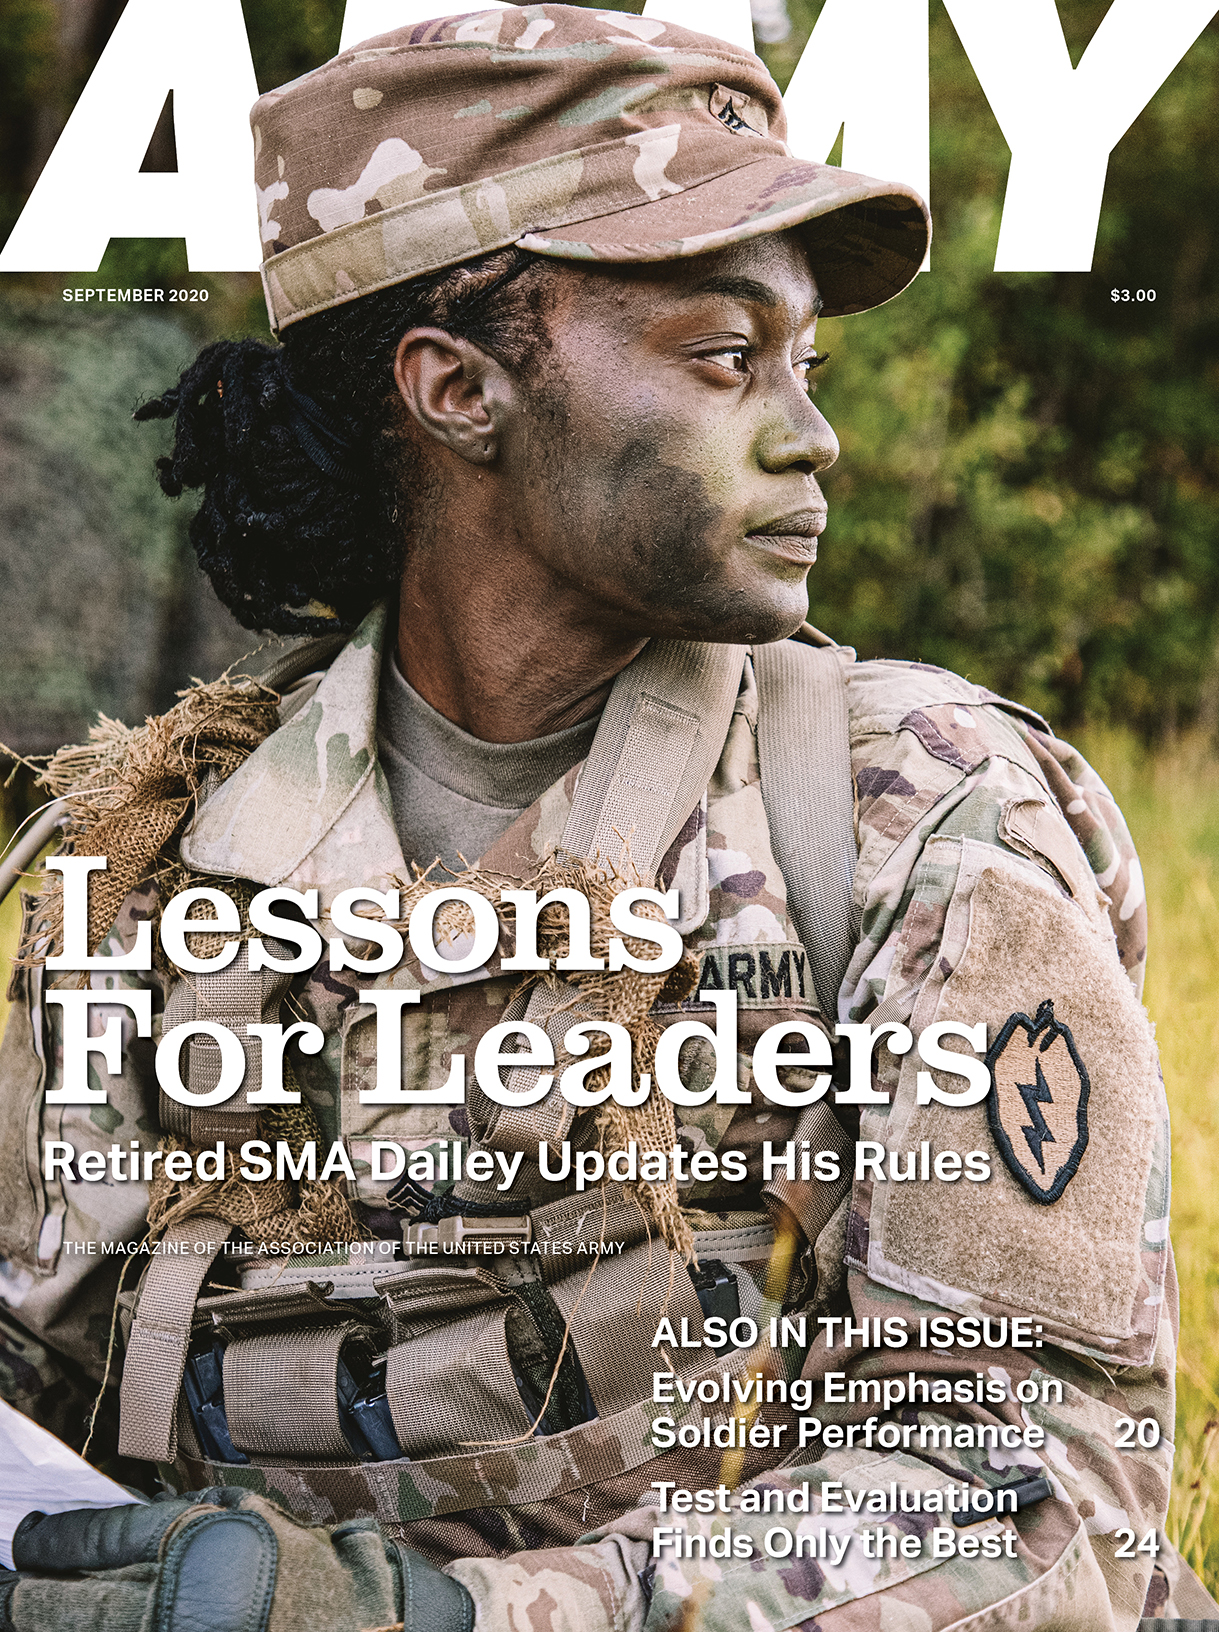 ARMY Magazine Vol. 70, No. 9, September 2020